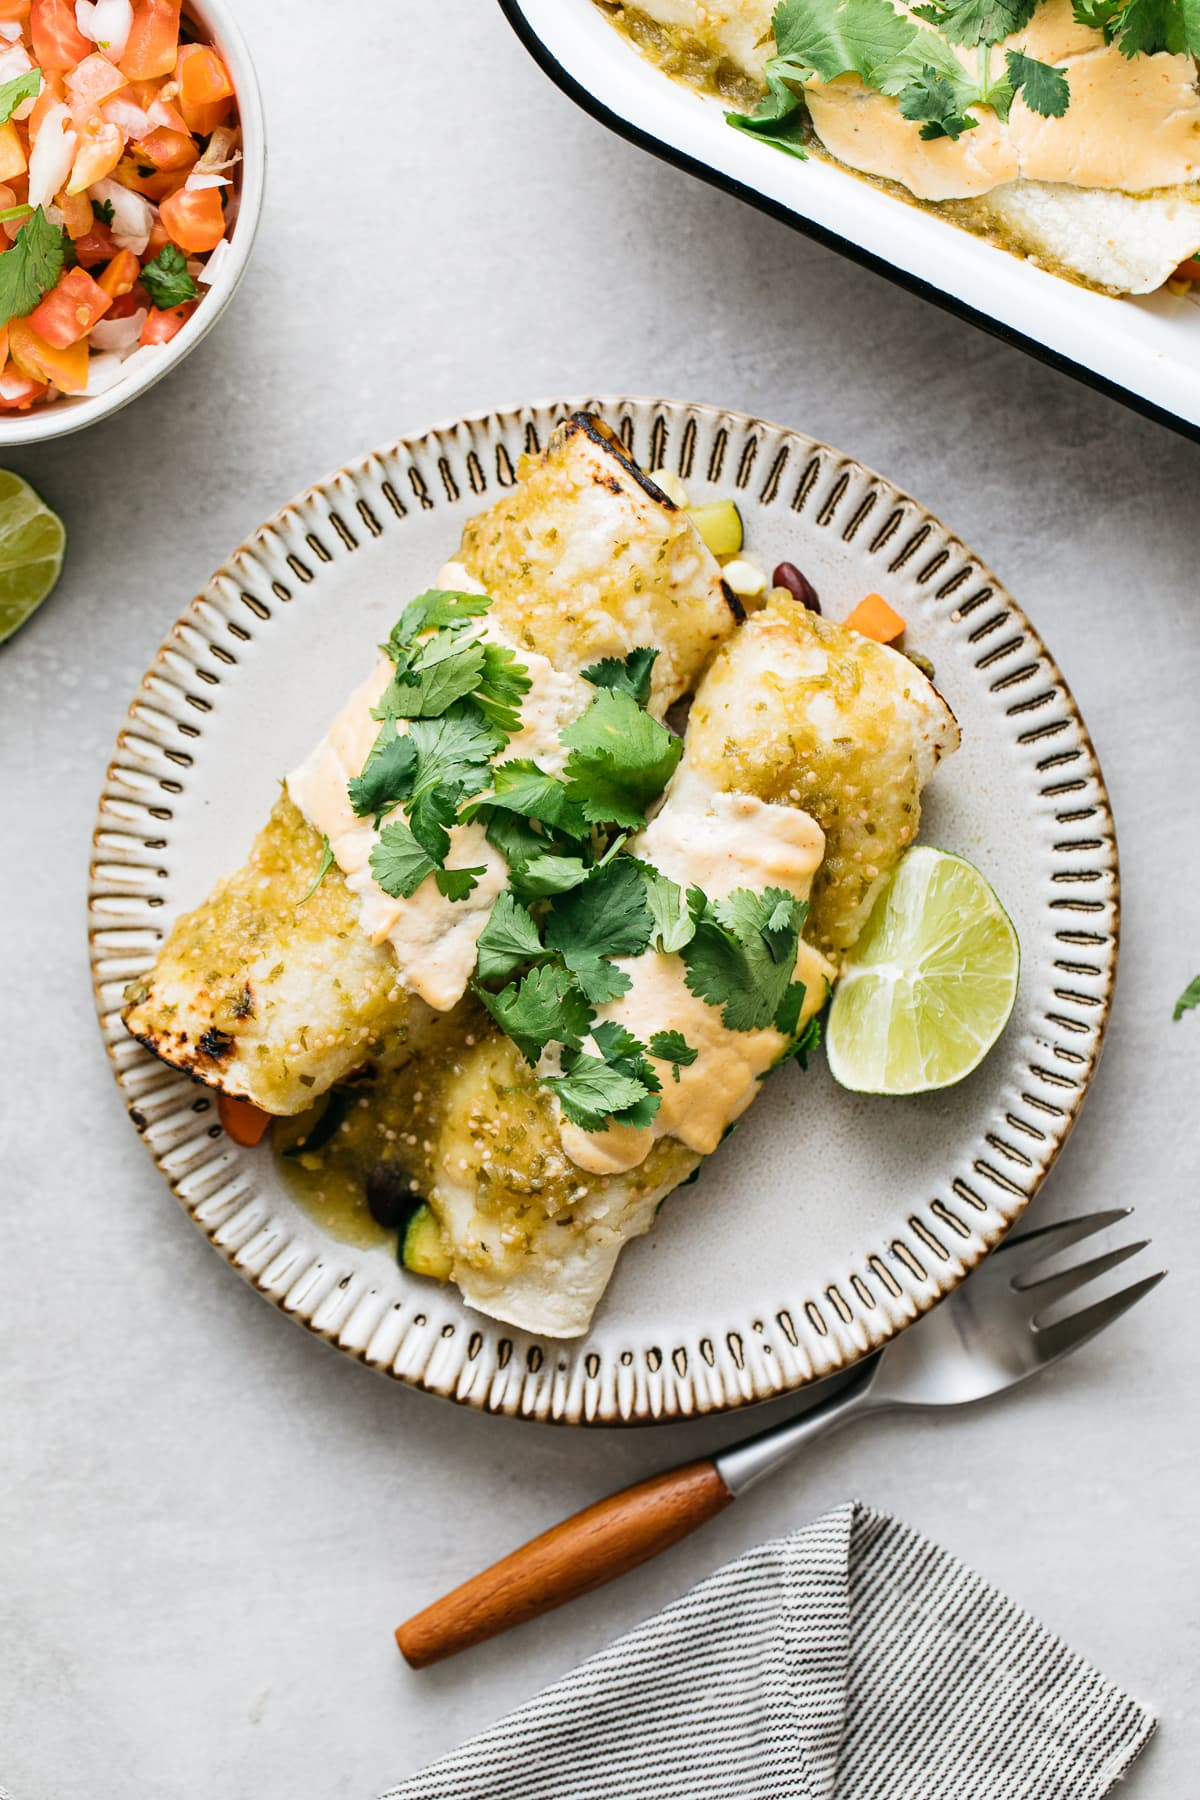 top down view of vegan enchilada verde on a small plate with items surroundings.